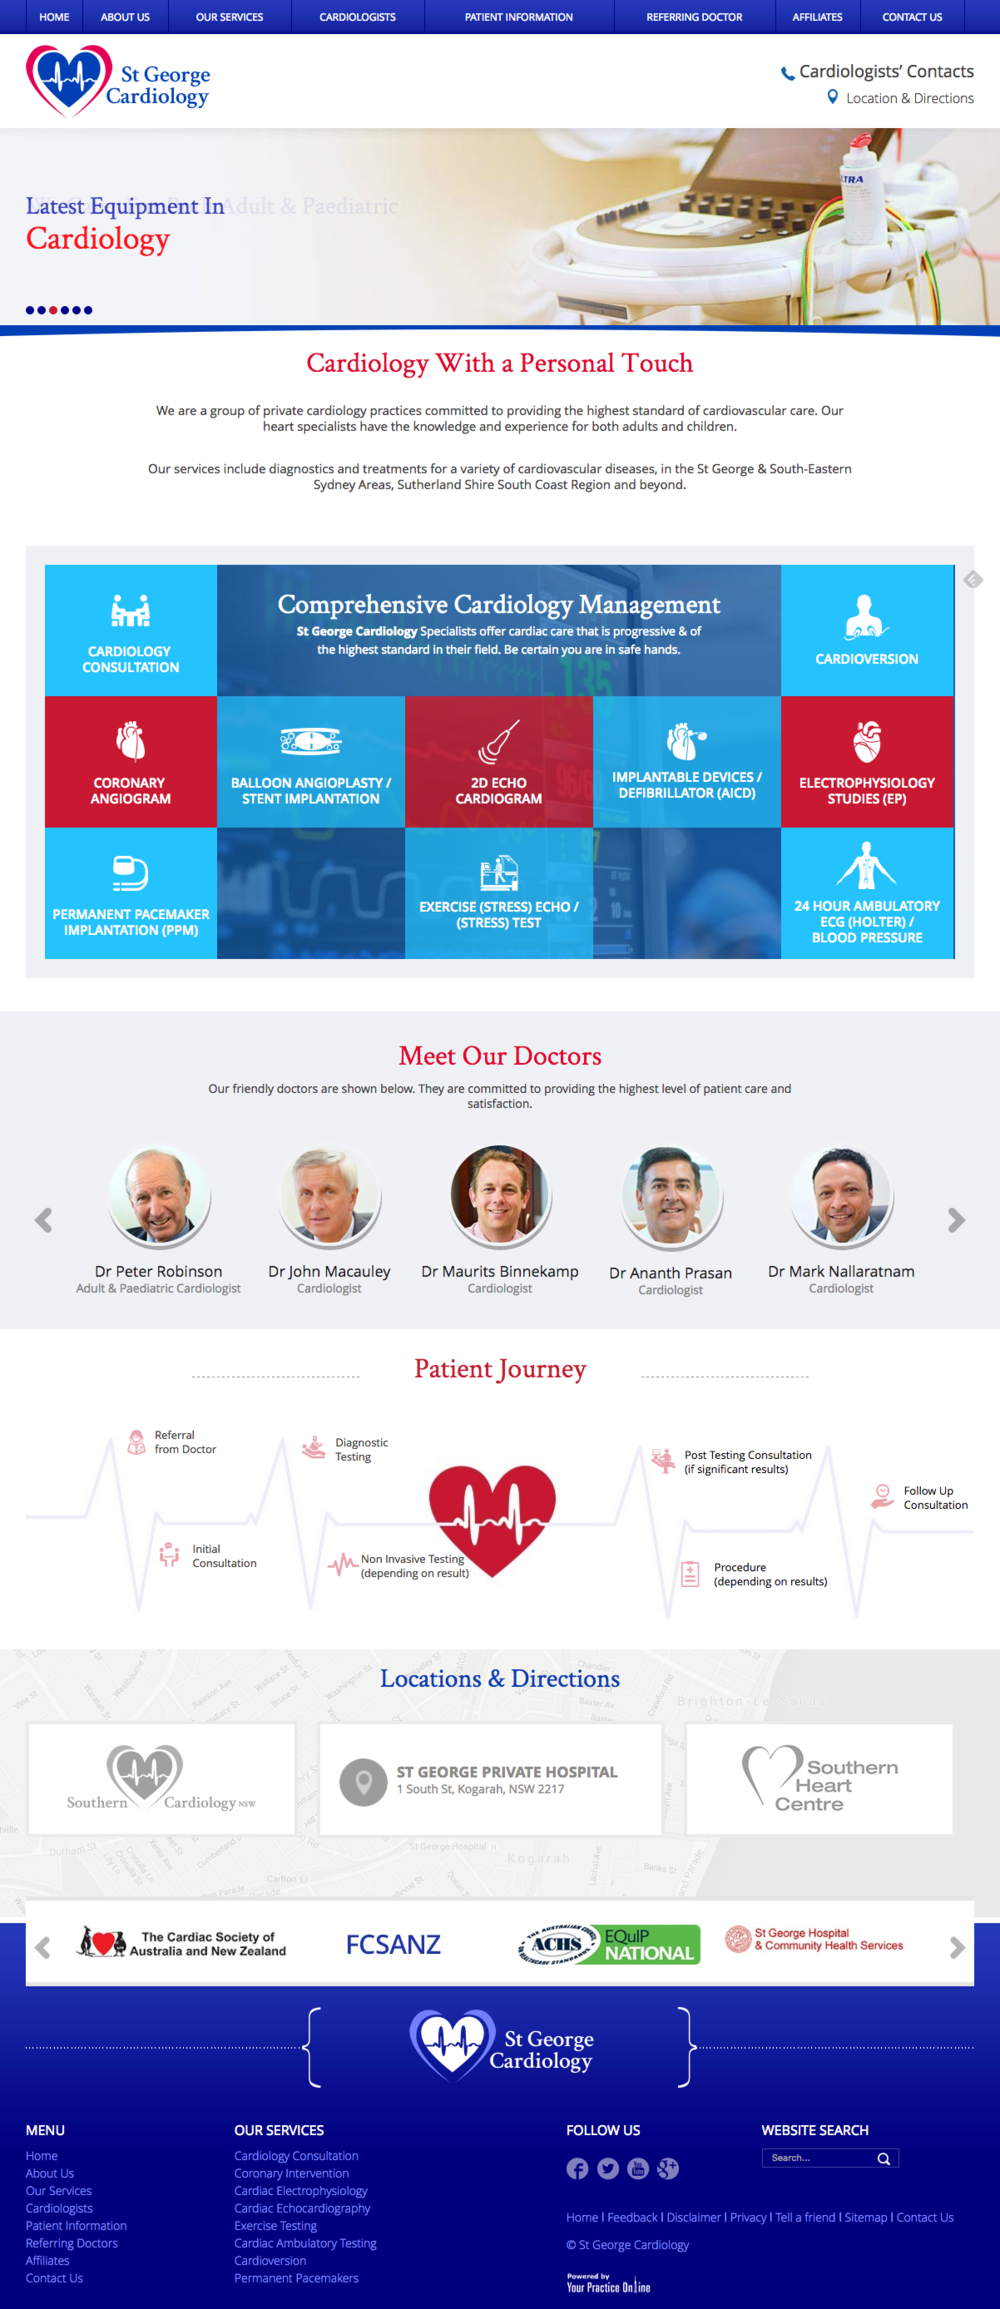 St George Cardiology   Cardiovascular Care   Treatment Sydney  Kogarah.png